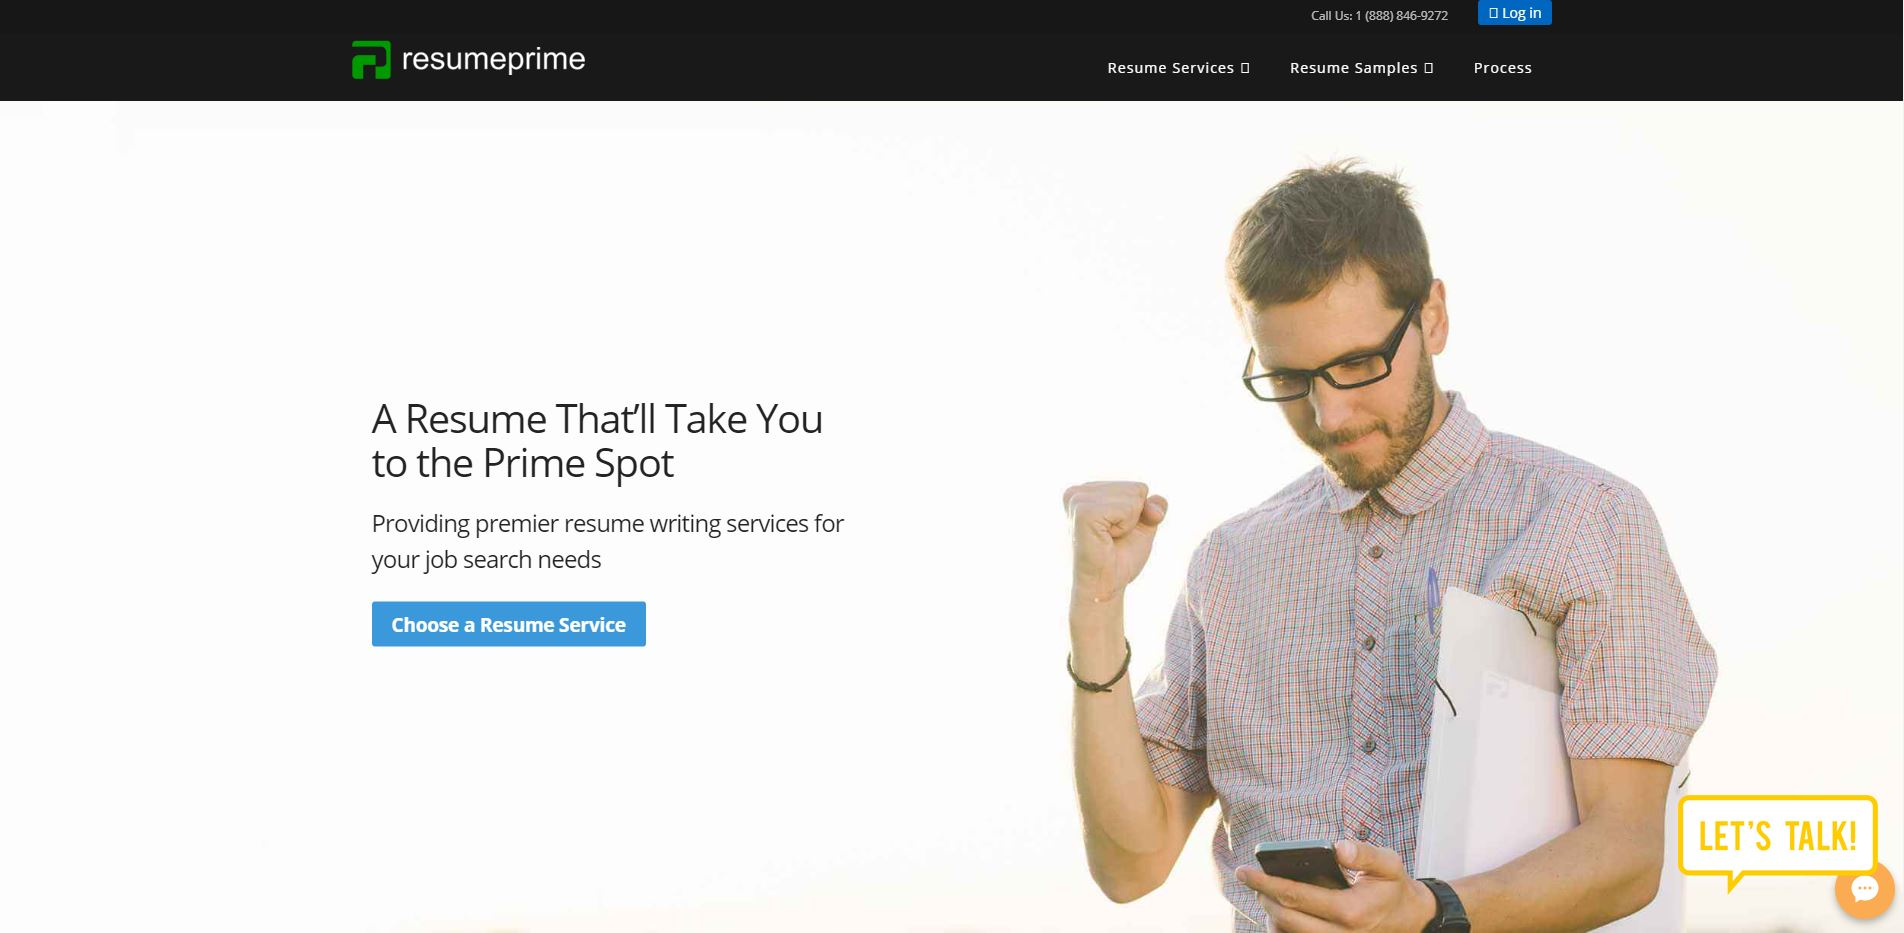 Top 10 Sales Resume Services: Resume Prime Hero Section